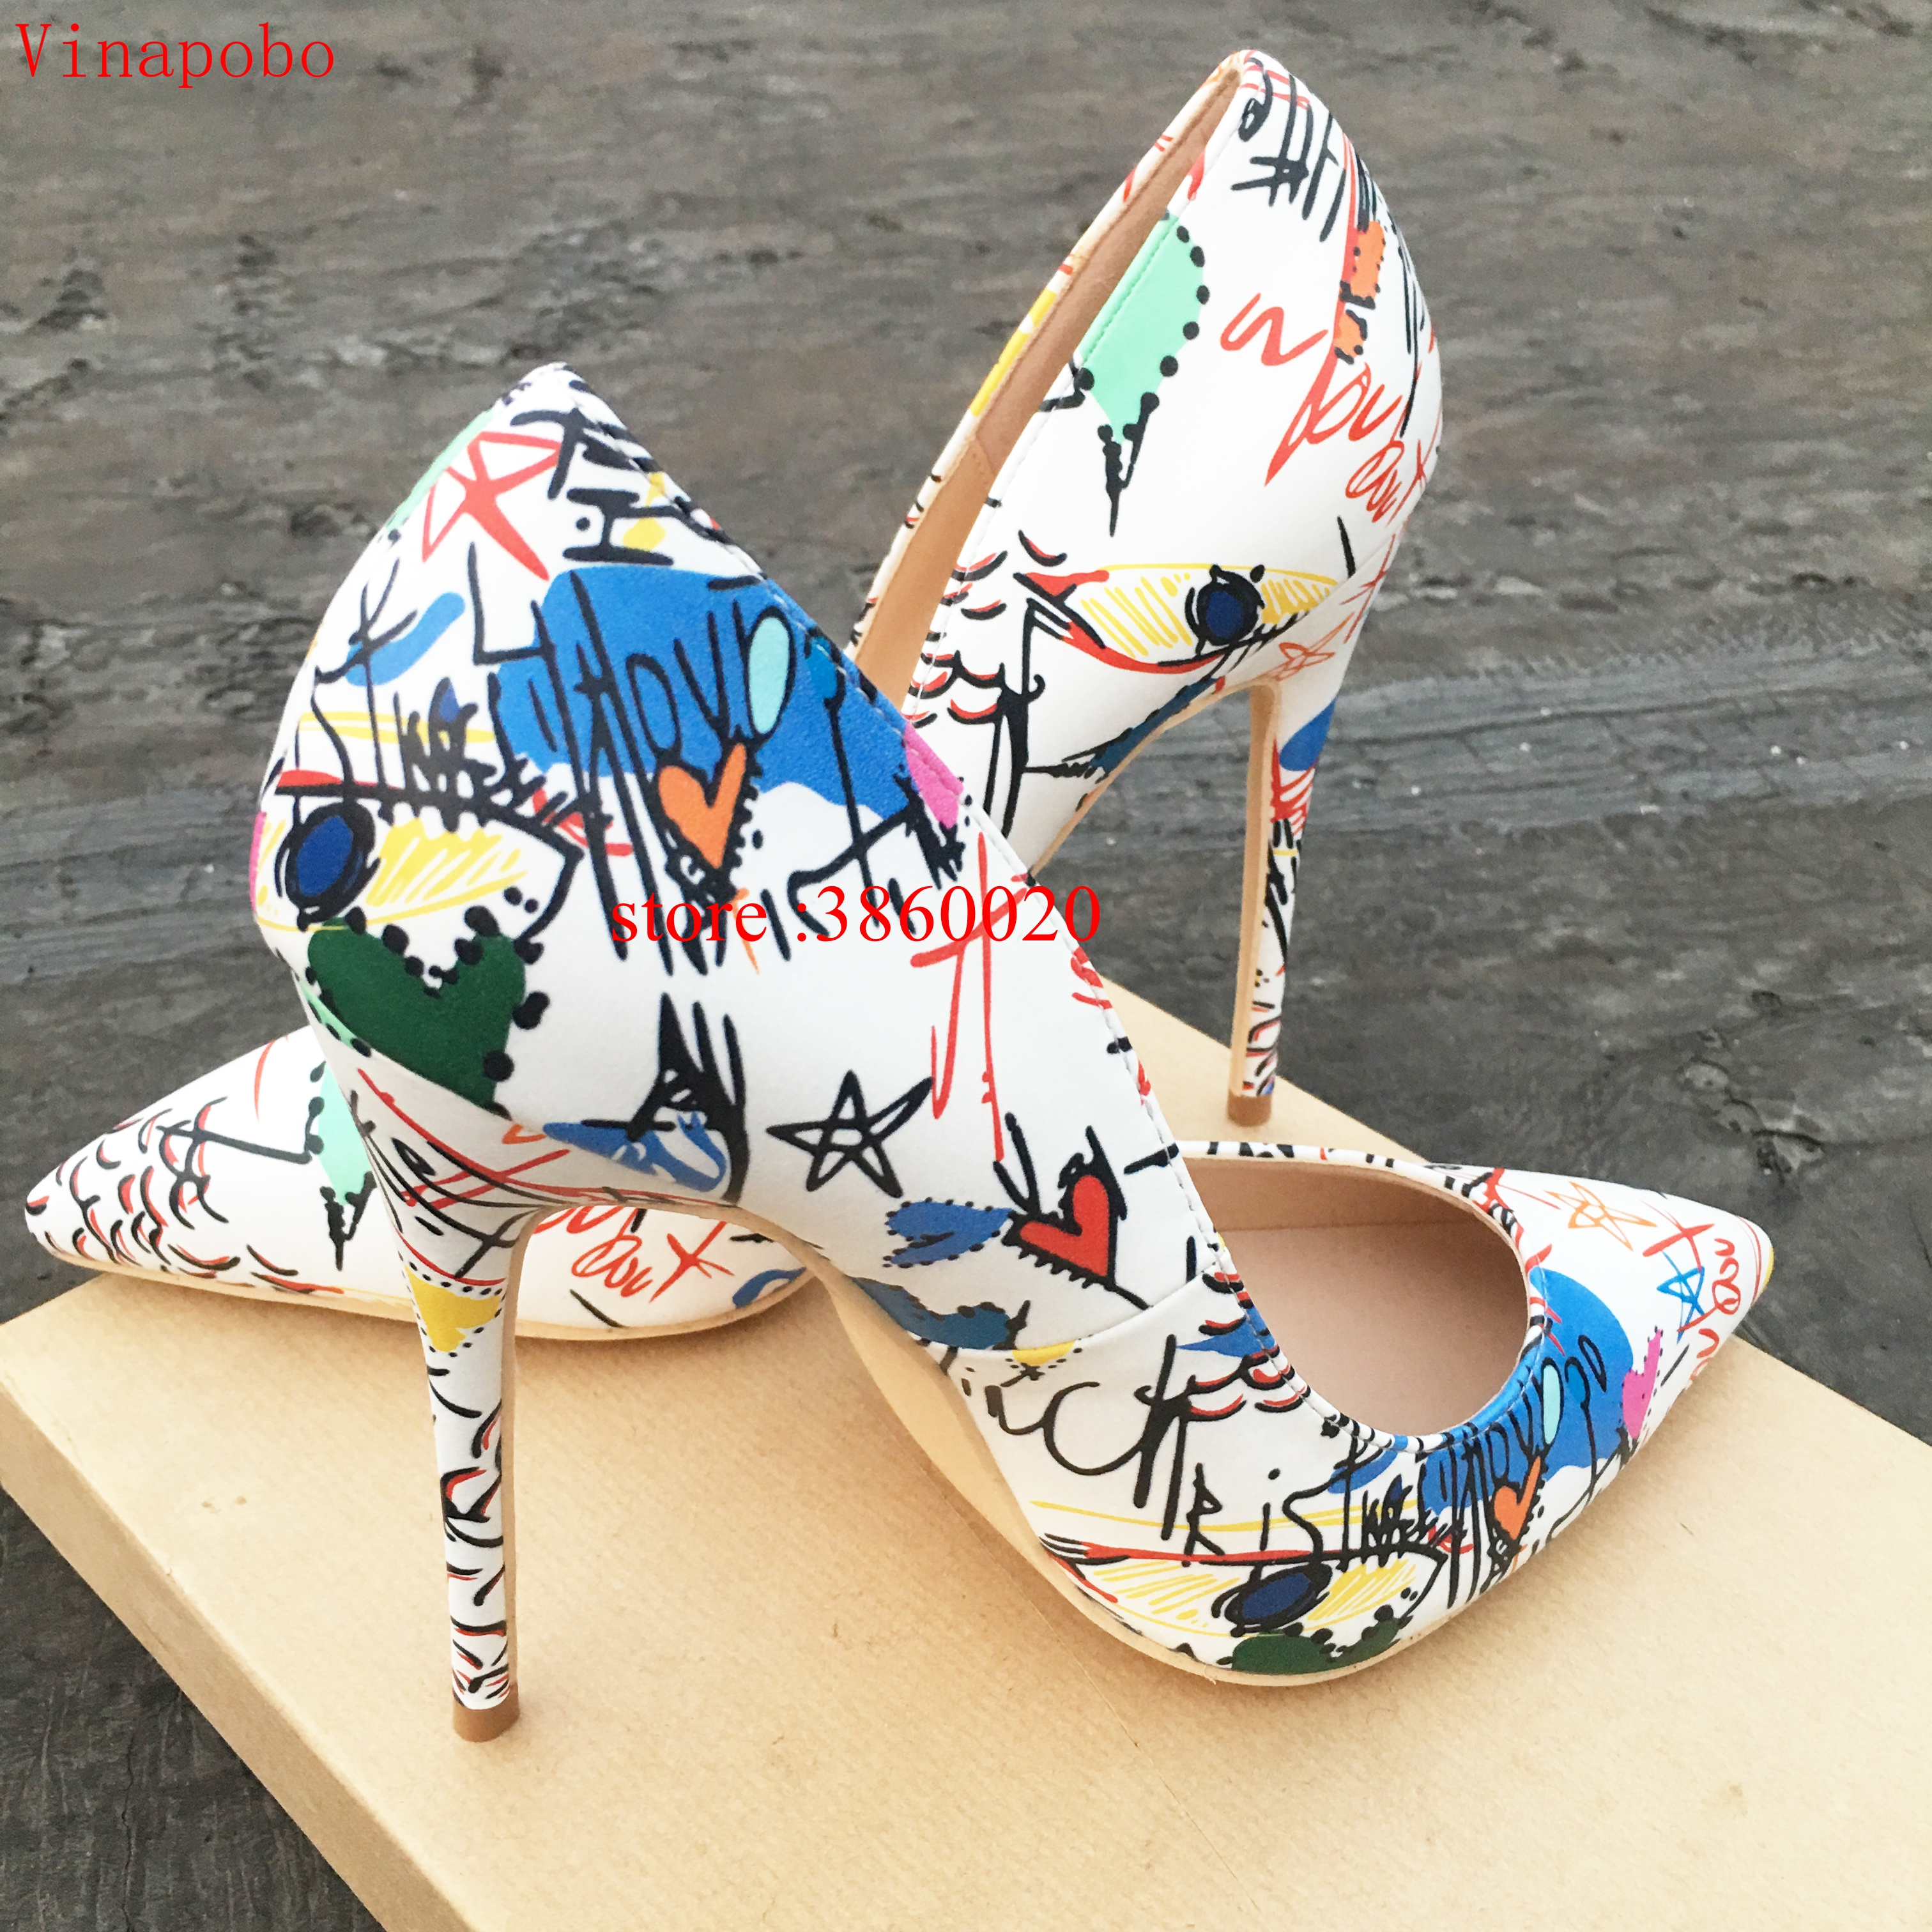 2019 New Runway Women Shoes White Graffiti Print Matte Leather High Heels Pumps Sexy Pointed Toe Office Ladies Party Dress Shoes